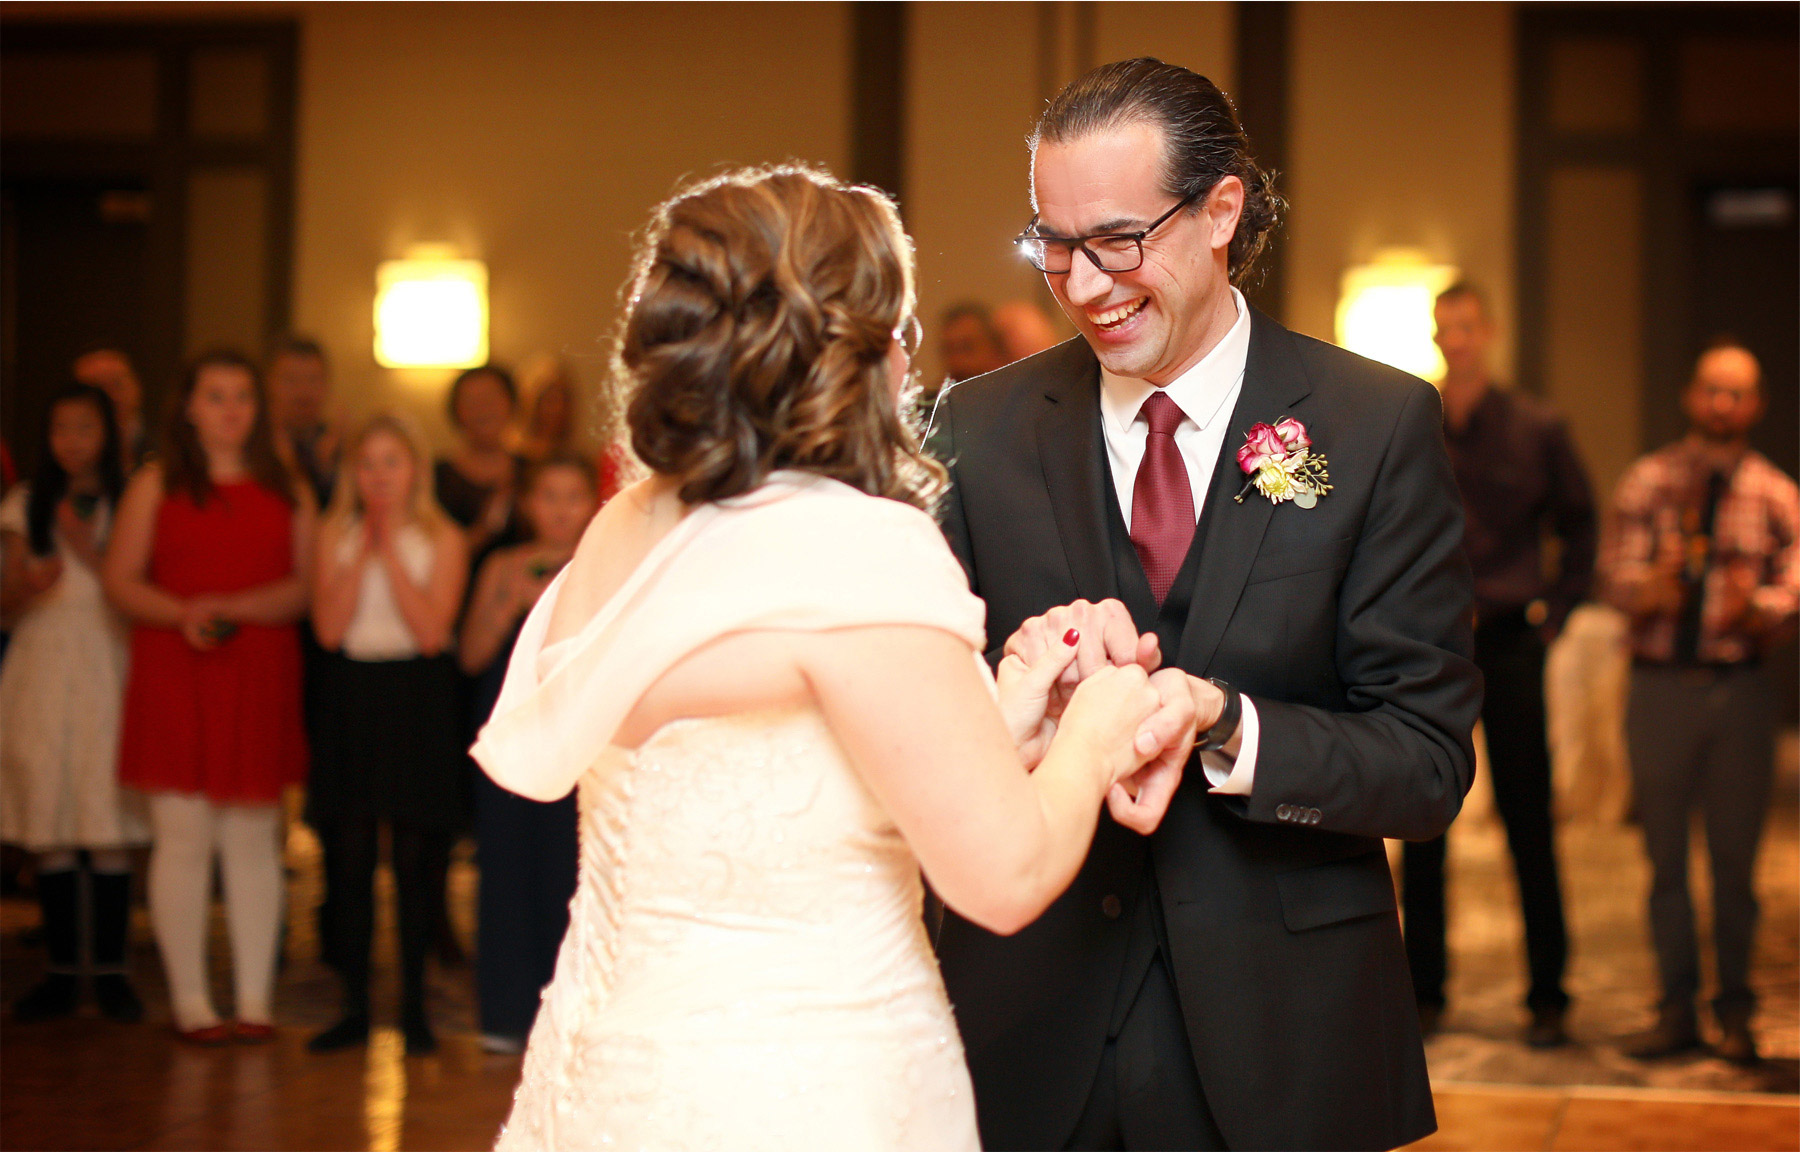 20-Minnetonka-Minnesota-Wedding-Photographer-by-Andrew-Vick-Photography-Winter-Marriott-Southwest-Reception-Bride-Groom-Dance-Elizabeth-and-Brian.jpg.jpg